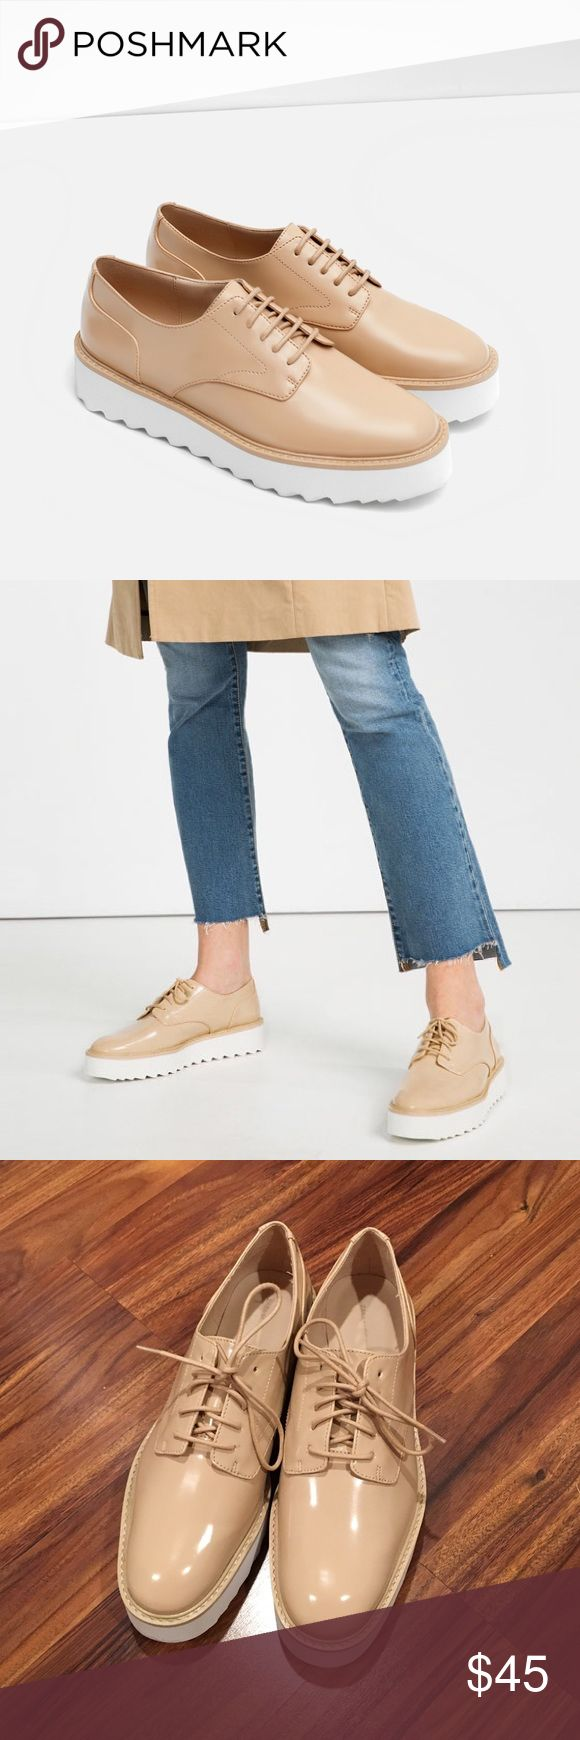 NWOT Zara beige flat platform lace up shoes Zara beige flat platform lace up shoes. Basically new without tags, only worn once, in perfect condition. Size 9.  — no trades — feel free to make an offer Zara Shoes Platforms